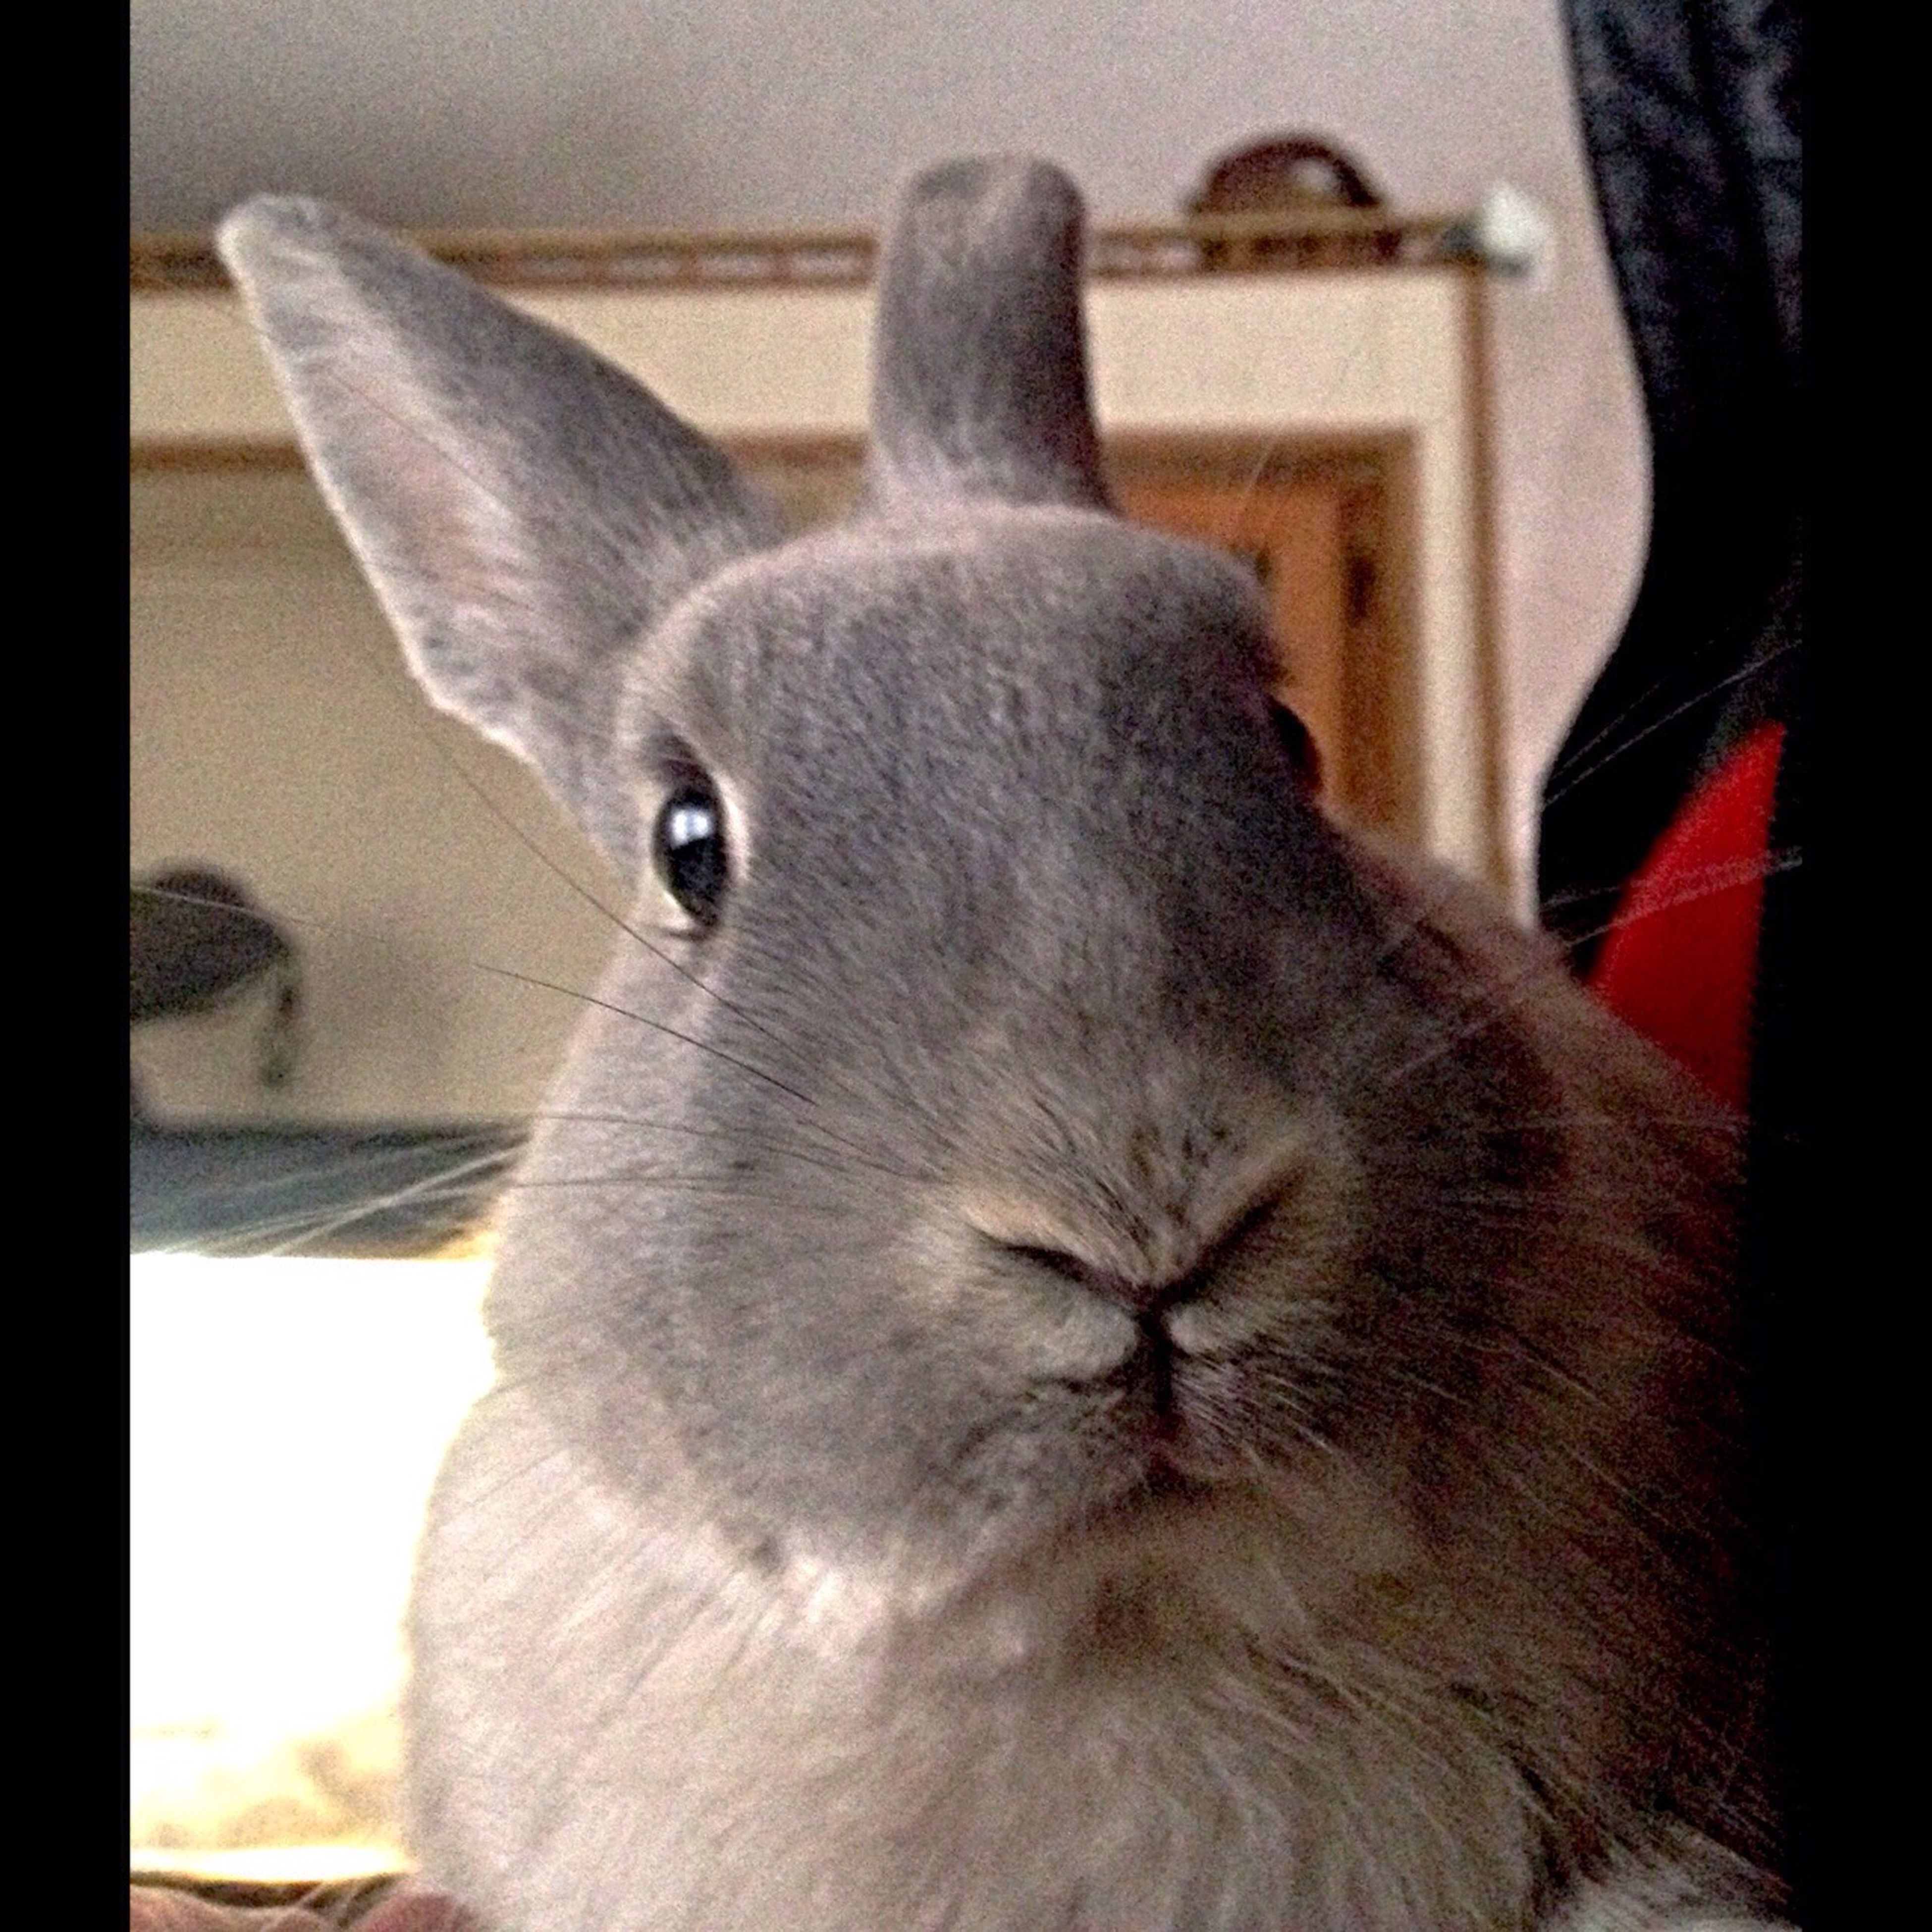 Silver bunny looks stunned about being adopted lol. Cute Pets Bunny  Rabbit Adoptastray